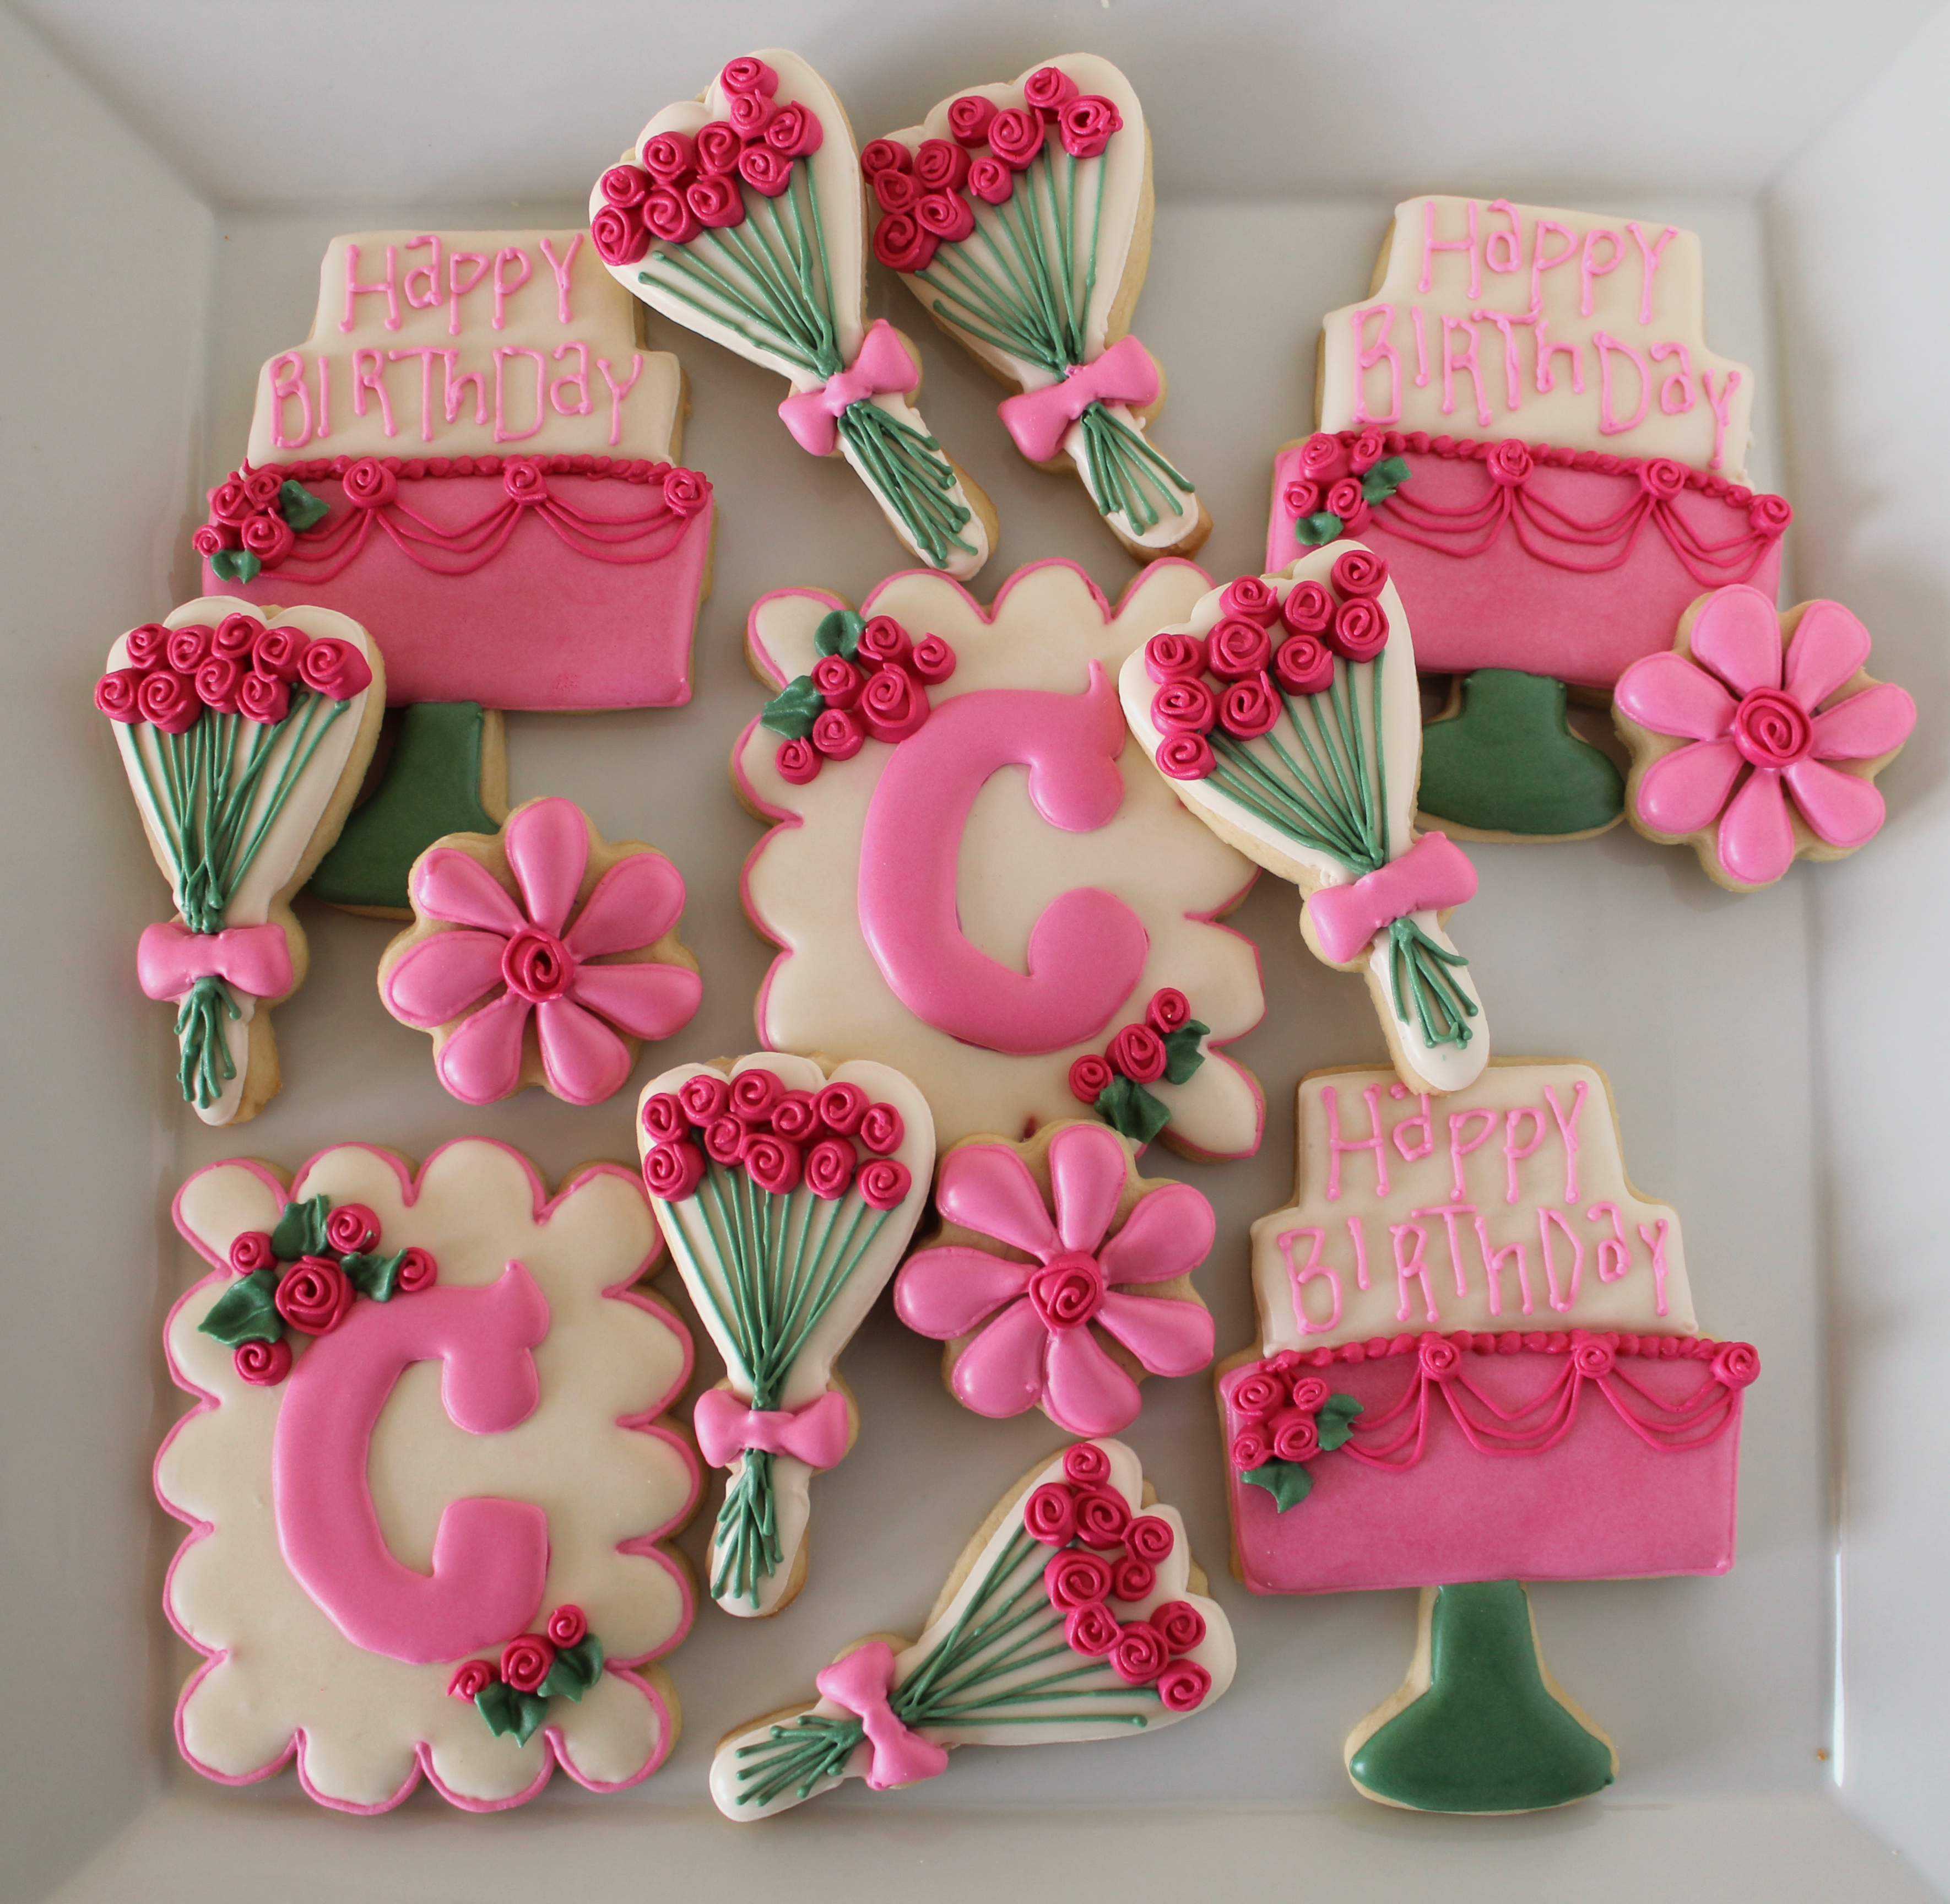 Spring Inspired Decorated Cookies Featuring Roses and Monogrammed ...